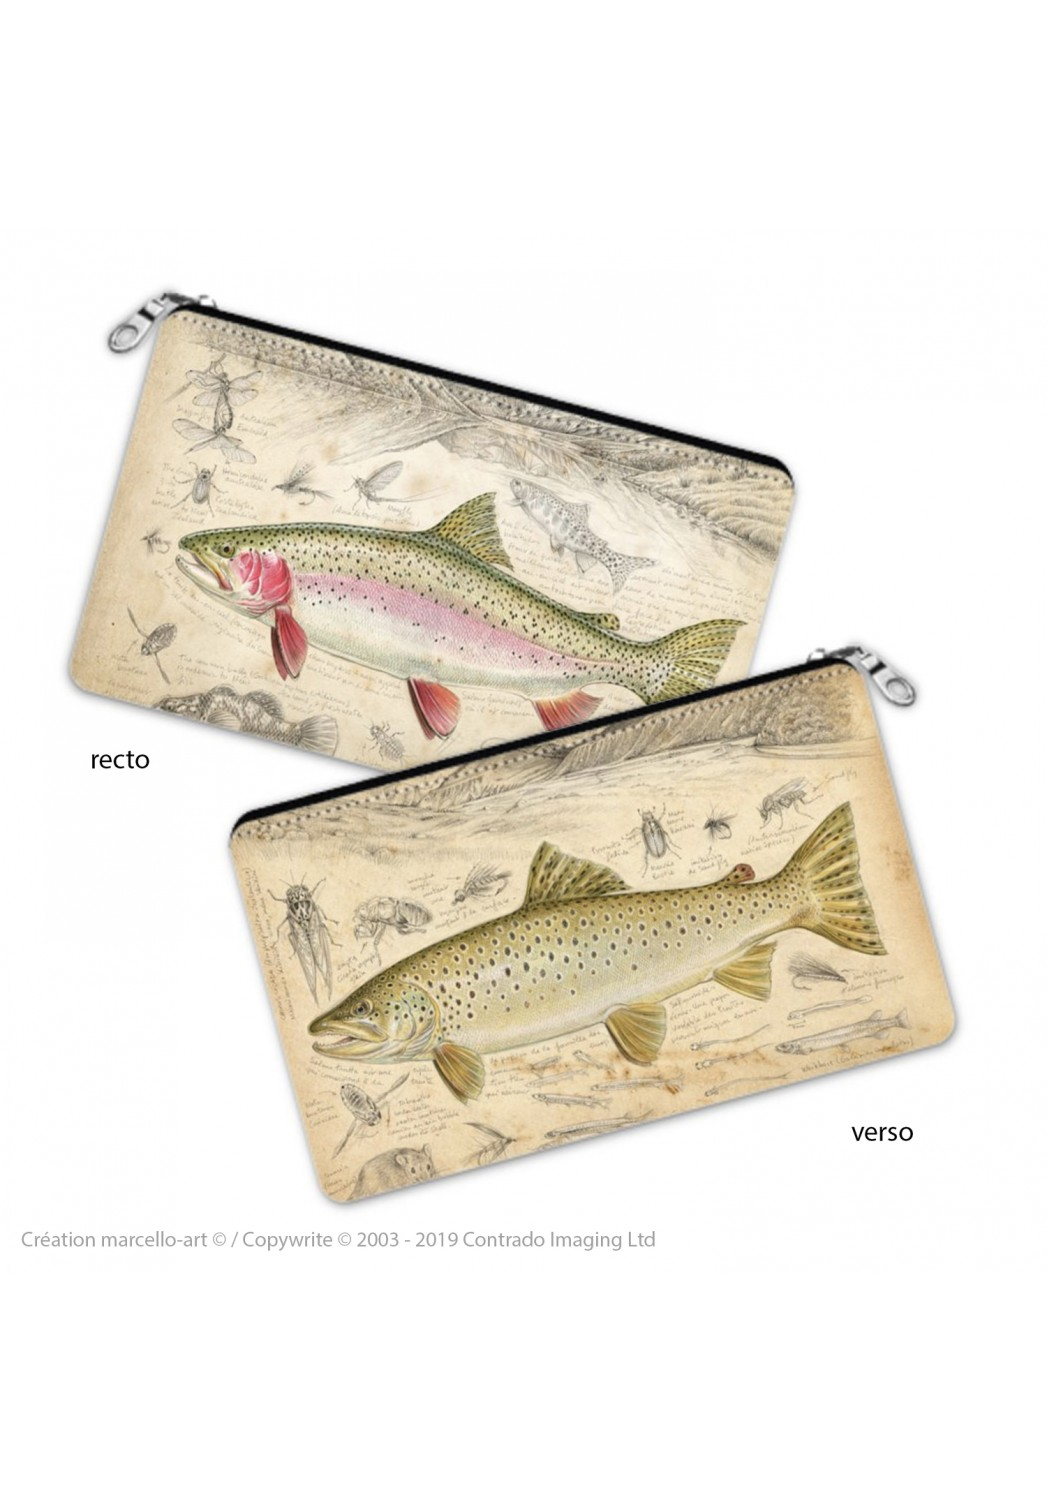 Marcello-art: Decoration accessoiries Pencil case 372-373 brown trout & rainbow trout